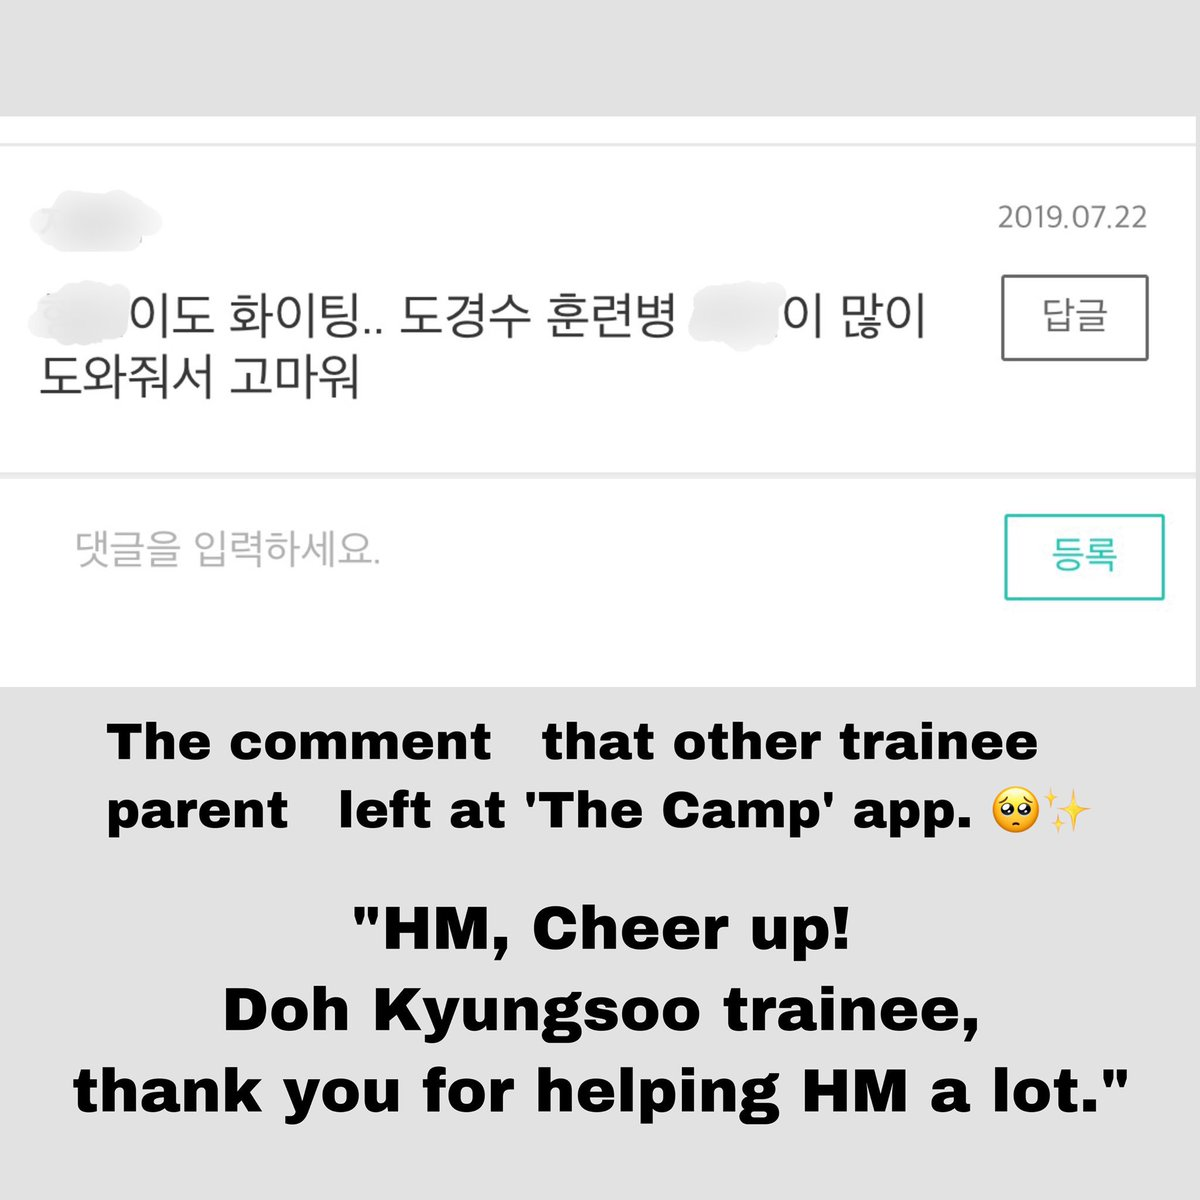 The comment that other trainee parent left at 'The Camp' app.  #kyungsoo<br>http://pic.twitter.com/eN37XvV0n8